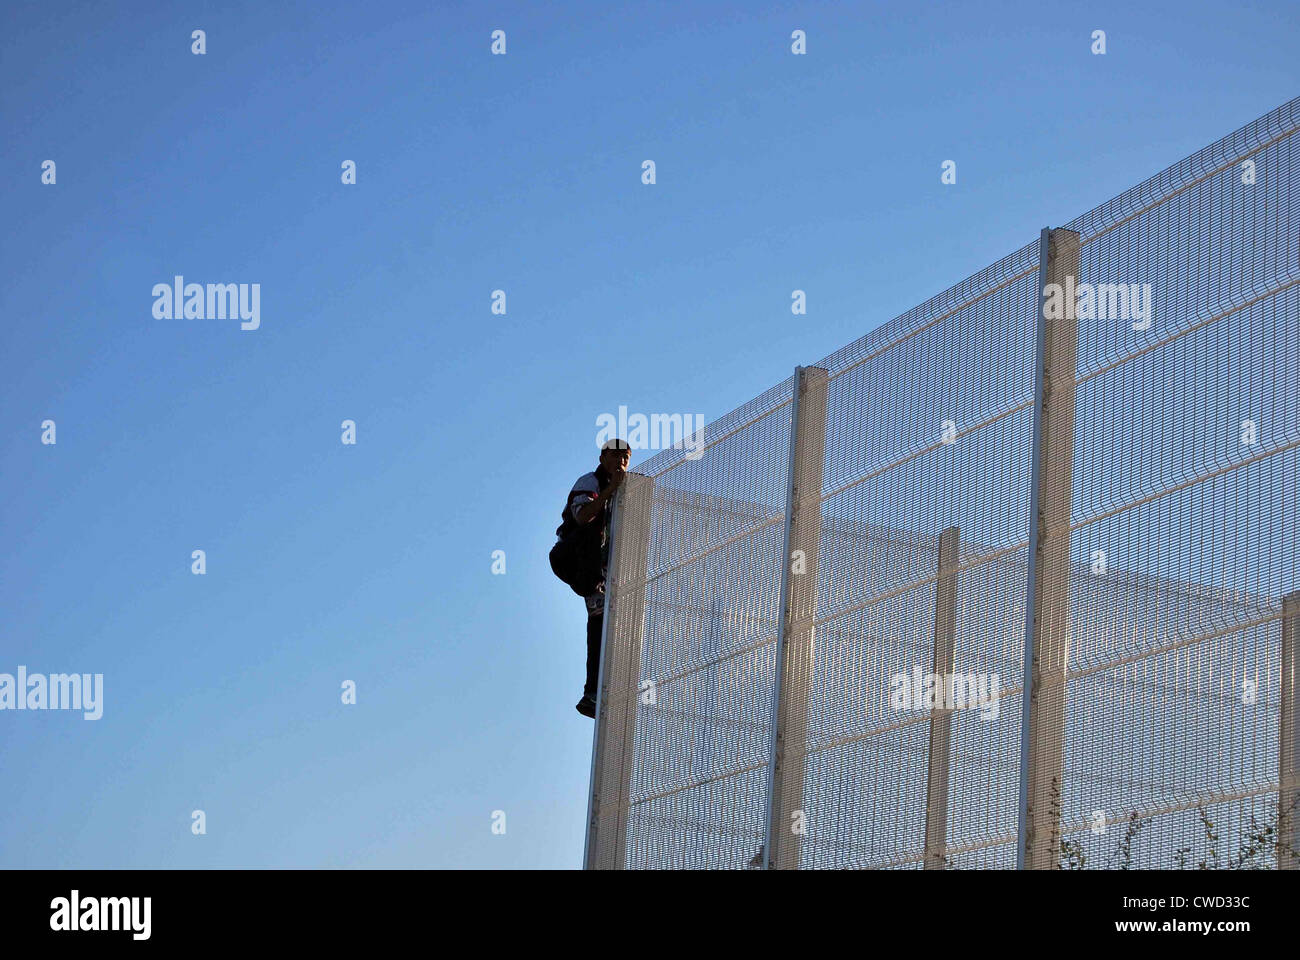 a migrant in calais climbs a security fence to get into the port of calais and possibly into the uk